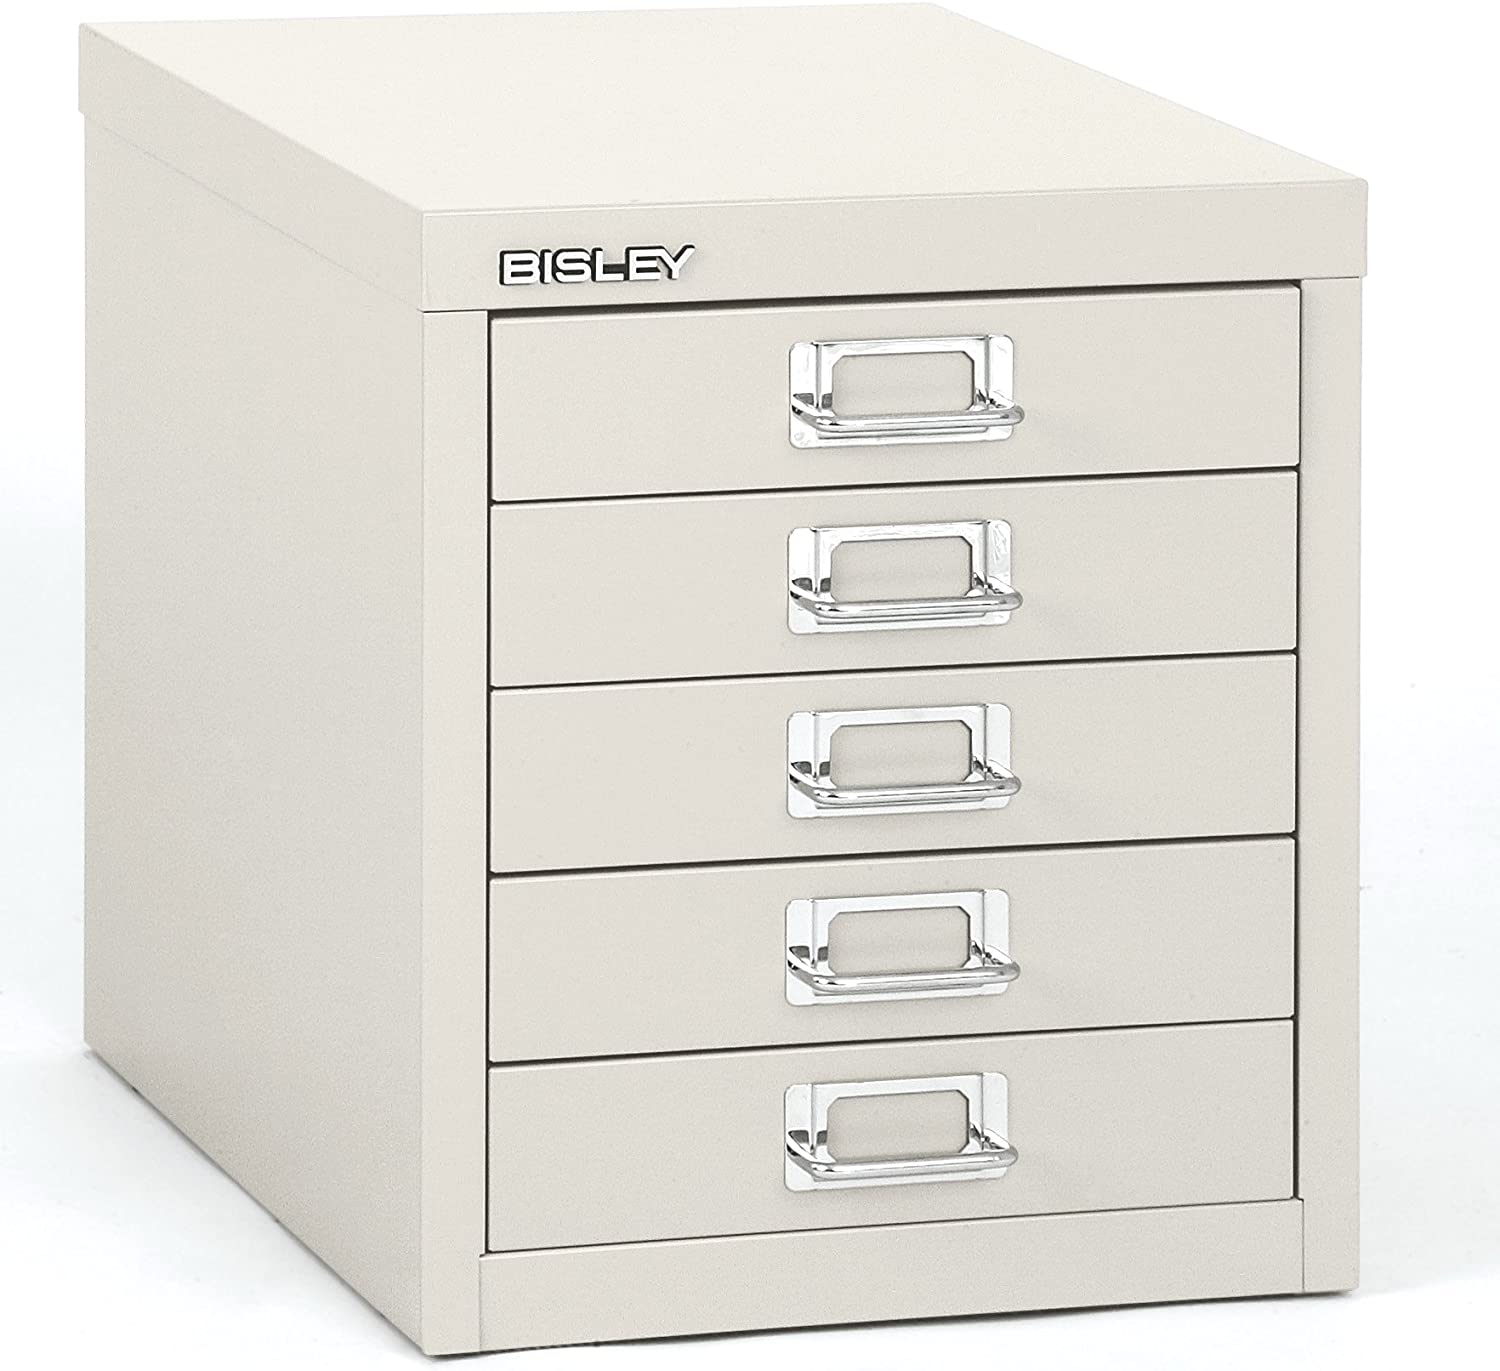 Bisley 5 Drawer Steel Desktop Multidrawer Storage Cabinet, White (MD5-WH)